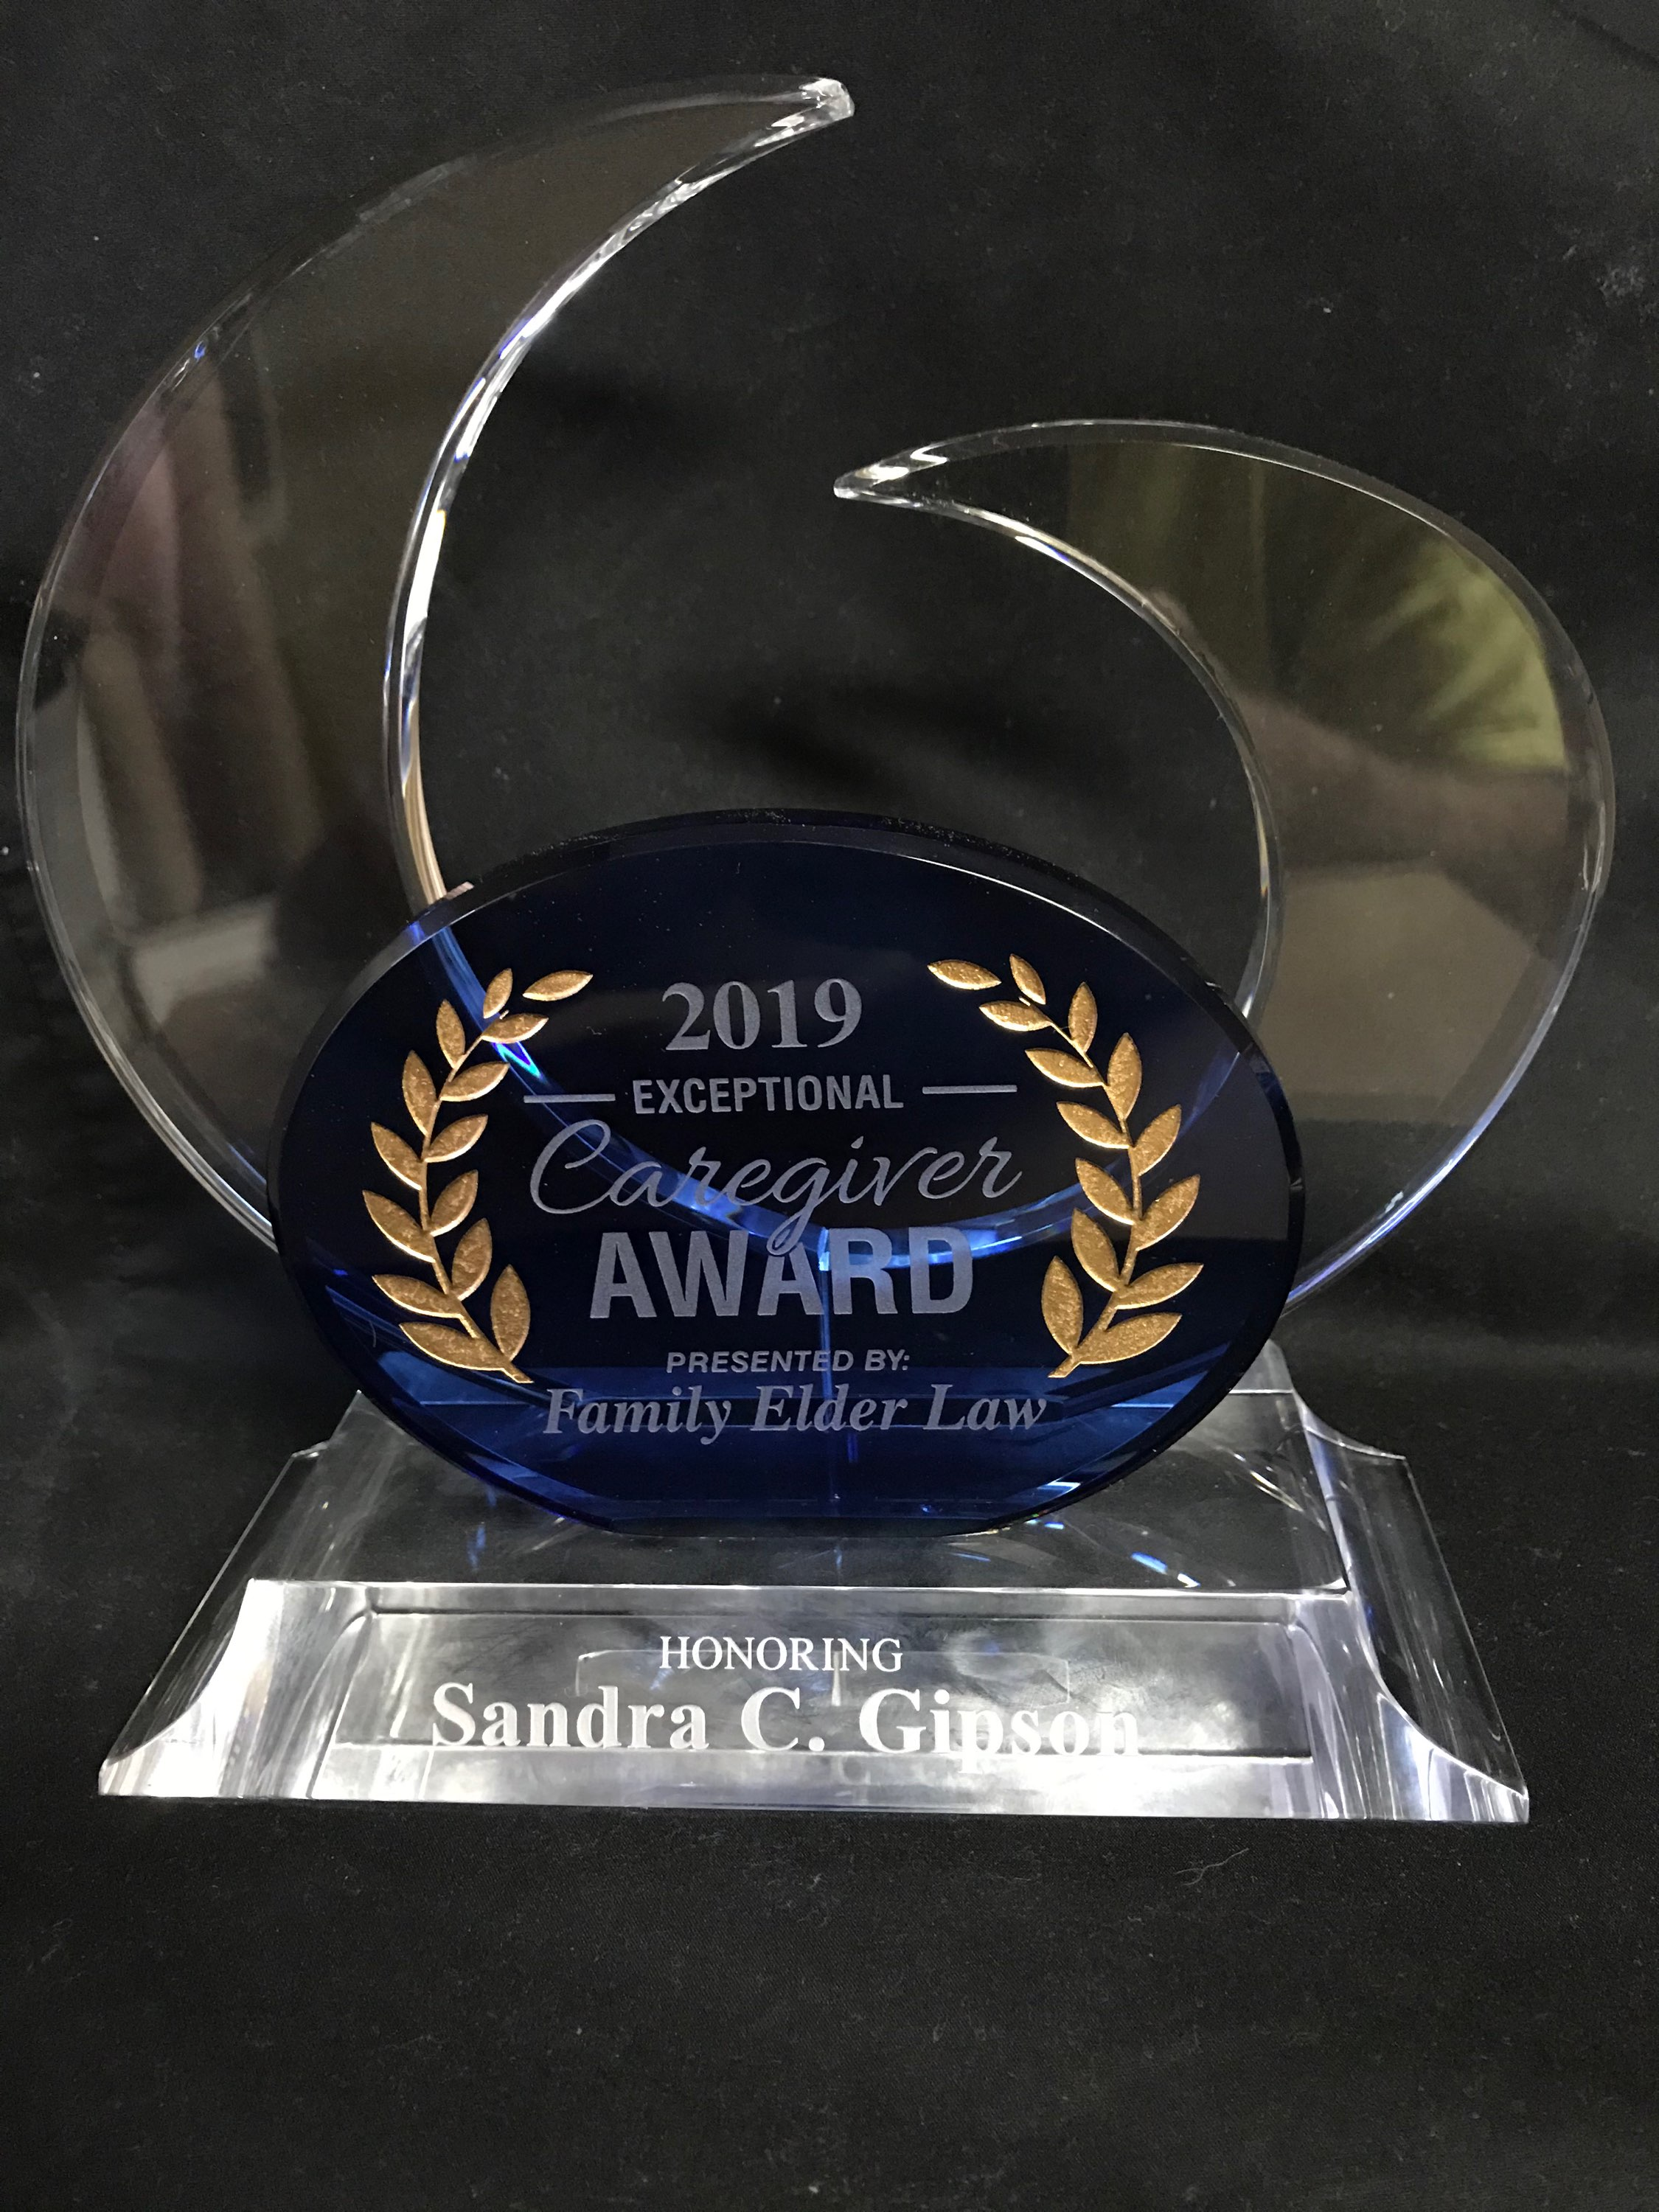 2019 Caregiver Award